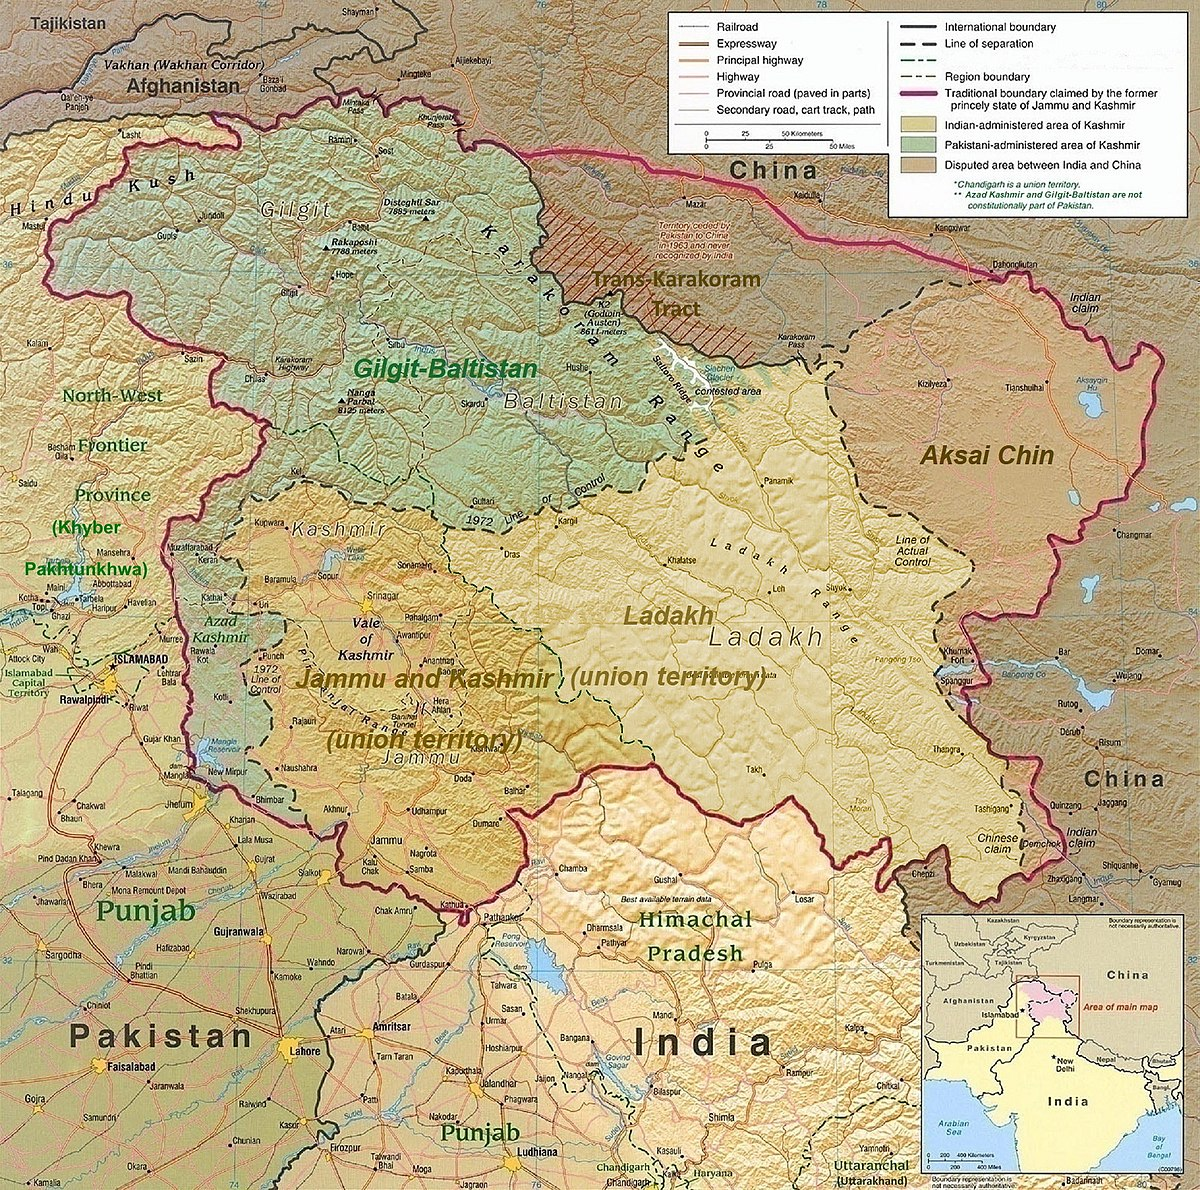 Revocation of the special status of Jammu and Kashmir